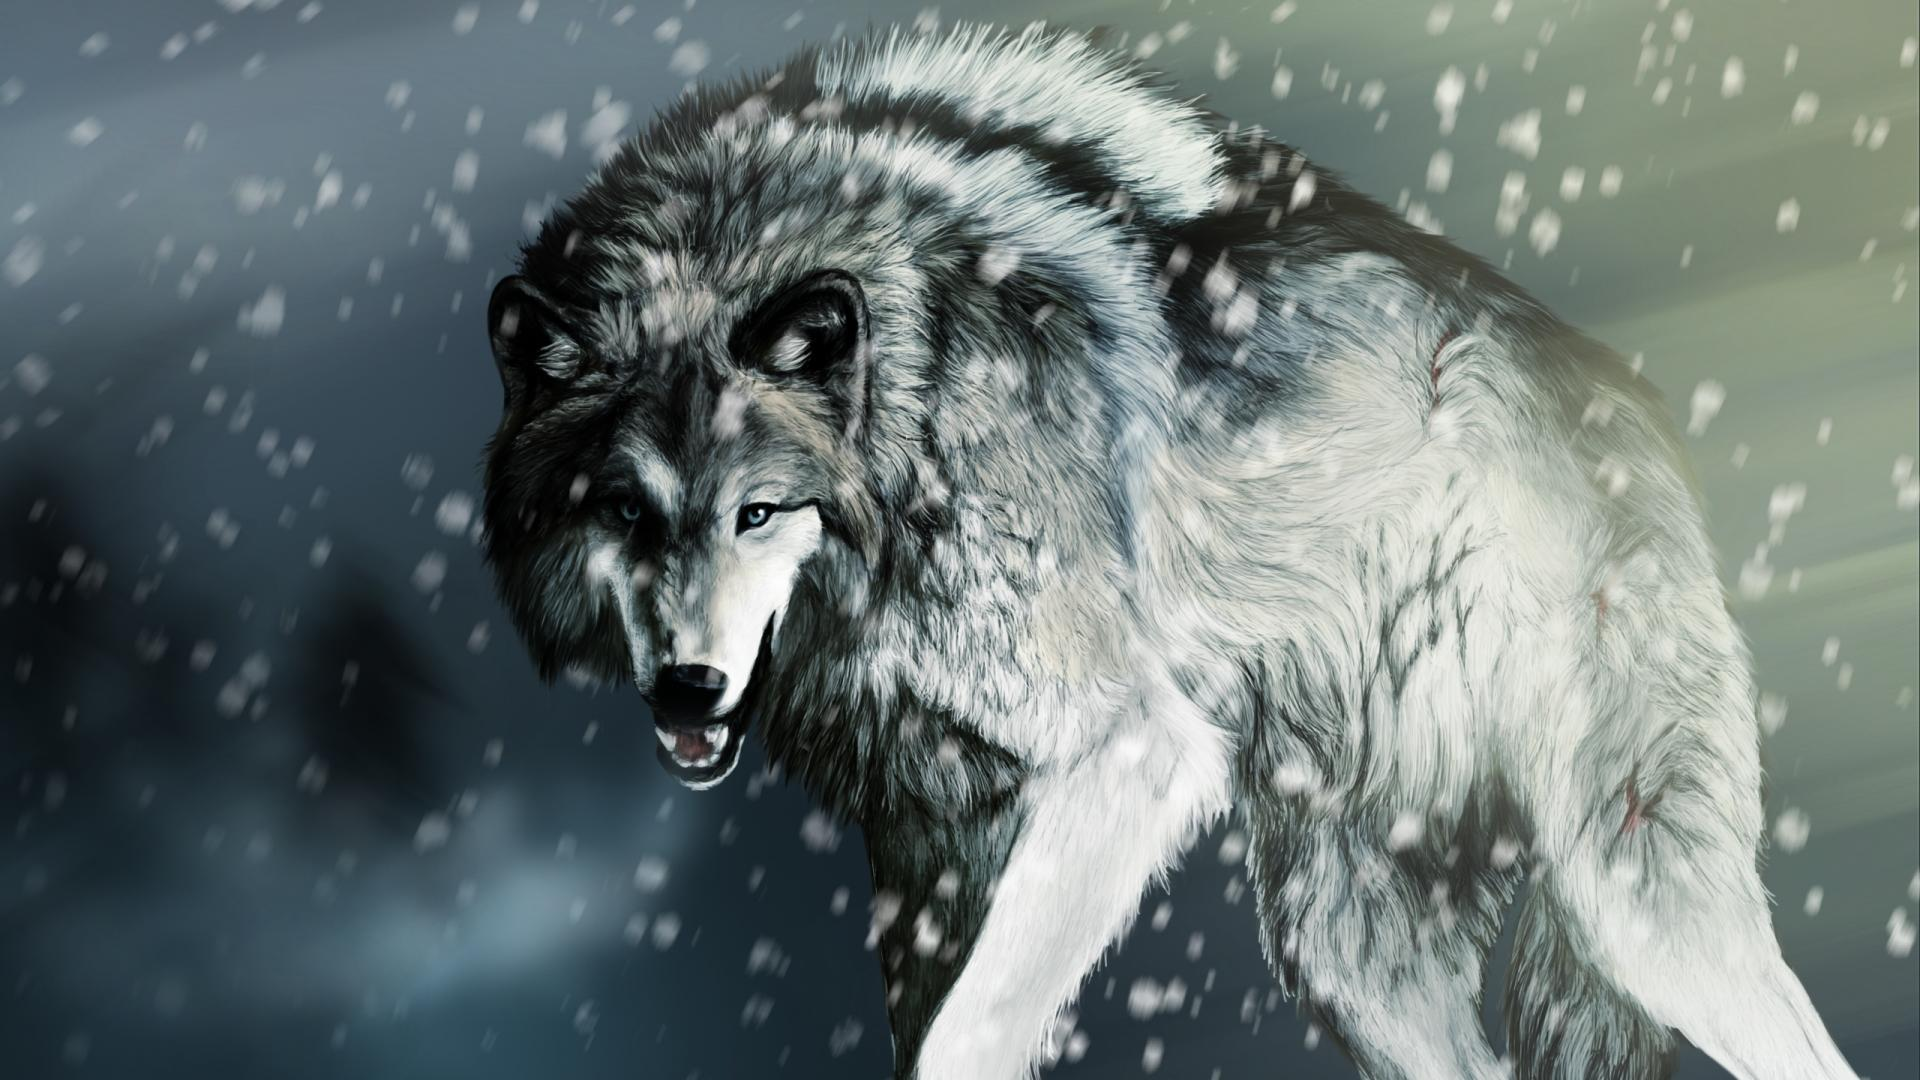 Gray Wolf Wallpaper Gray Wolf Images Cool Wallpapers 1920x1080